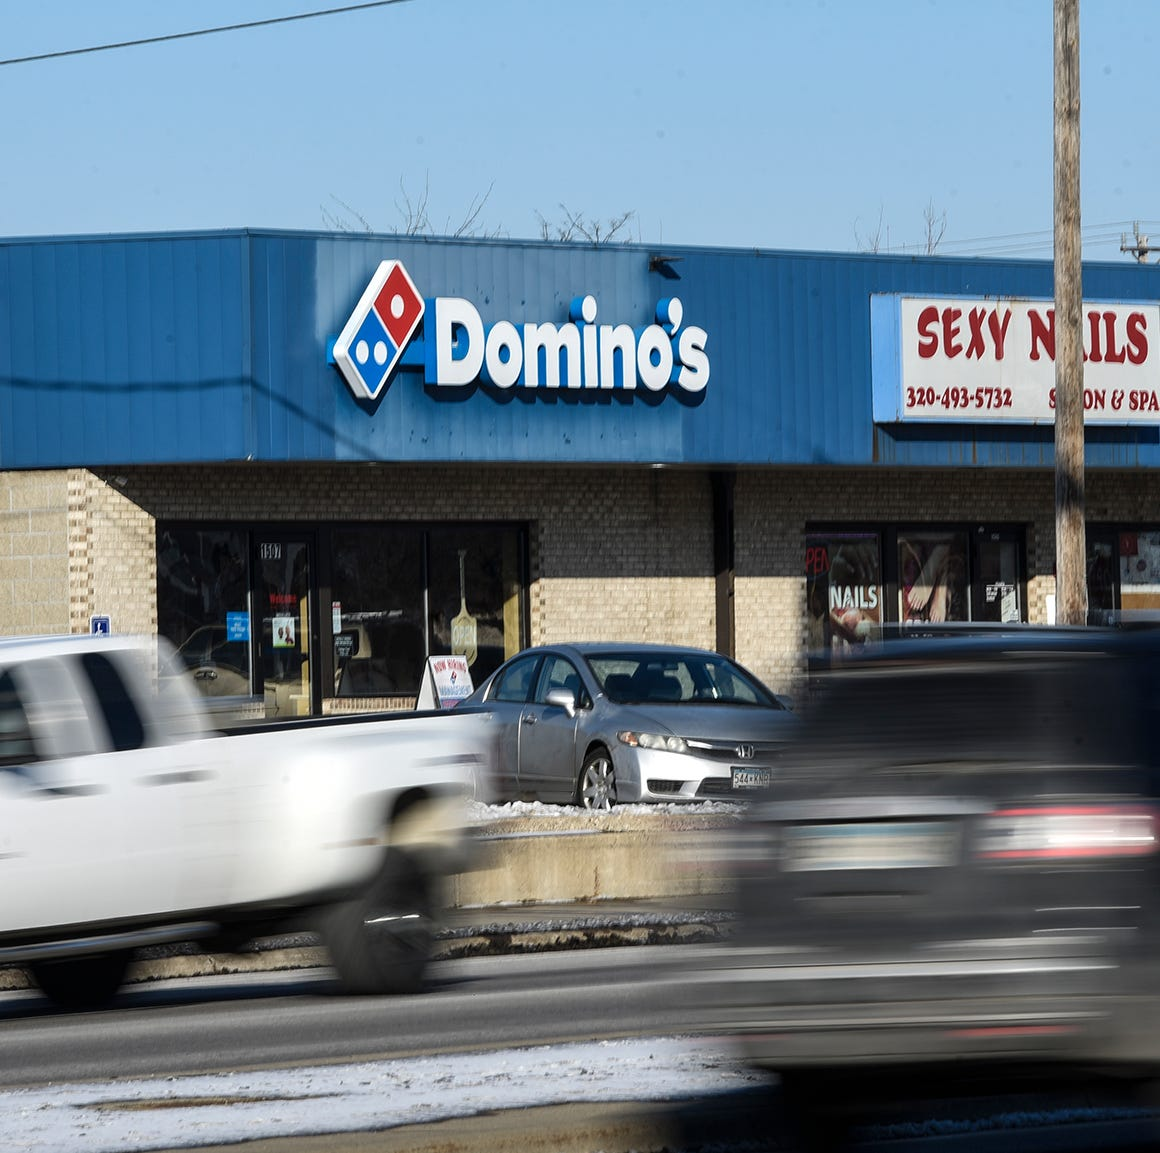 Domino's Pizza says you should expect a more inviting atmosphere, better parking downtown